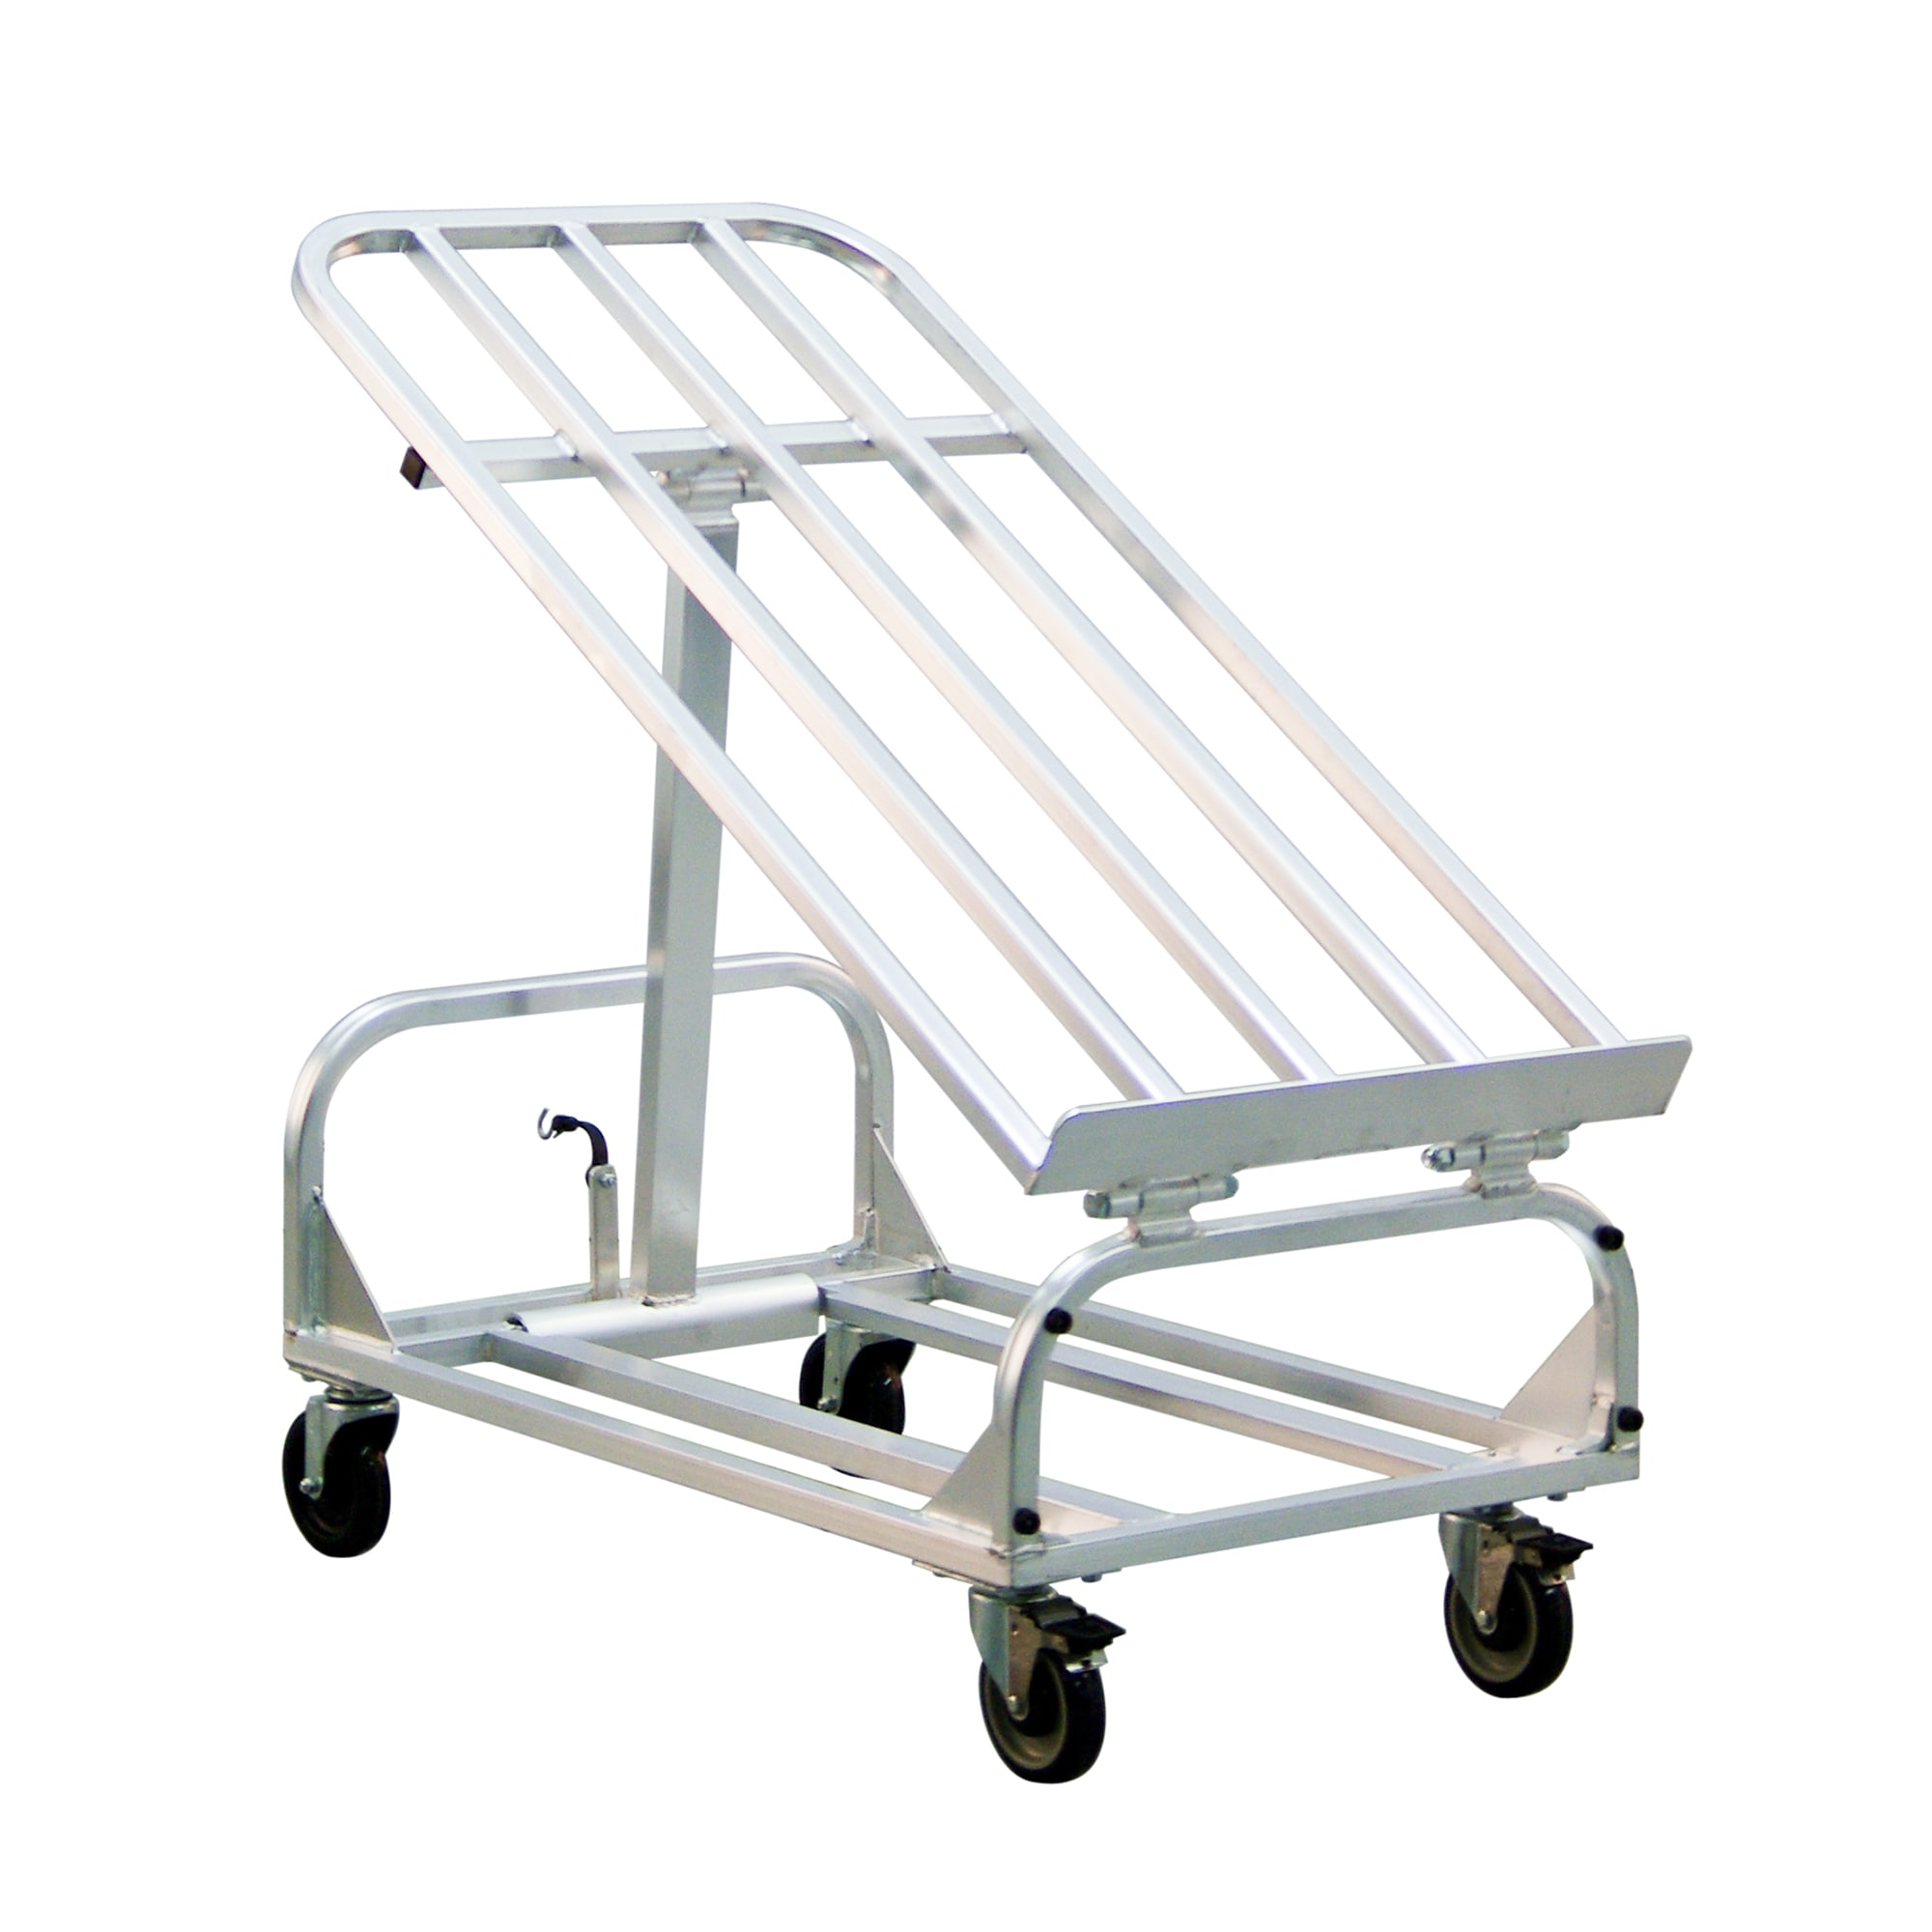 New Age 1407 Merchandising Rack w/ 1000-lb Capacity